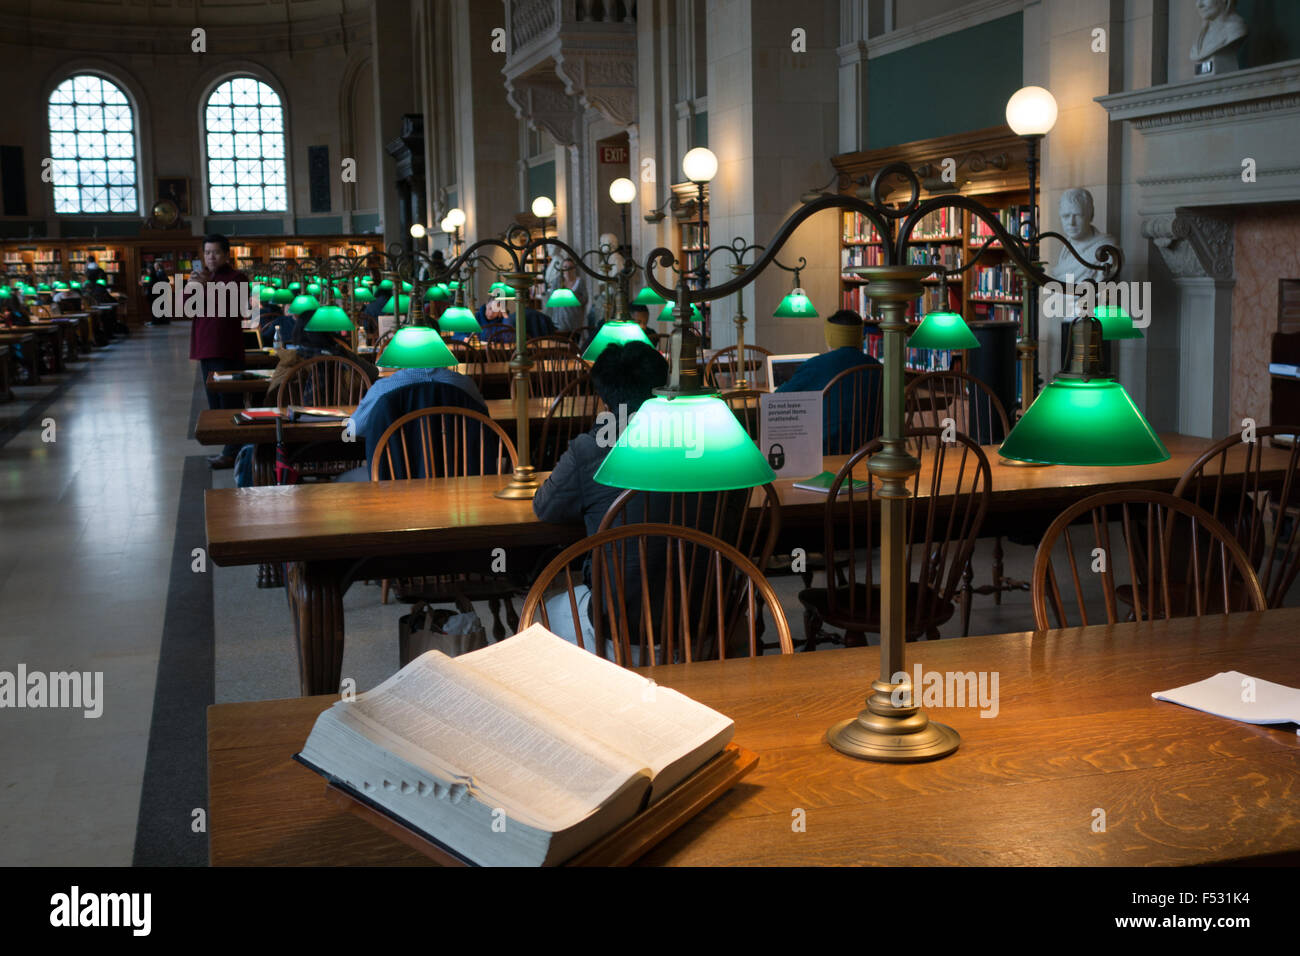 Boston library table lamp mckim reading room stock photo 89192296 boston library table lamp mckim reading room mozeypictures Gallery